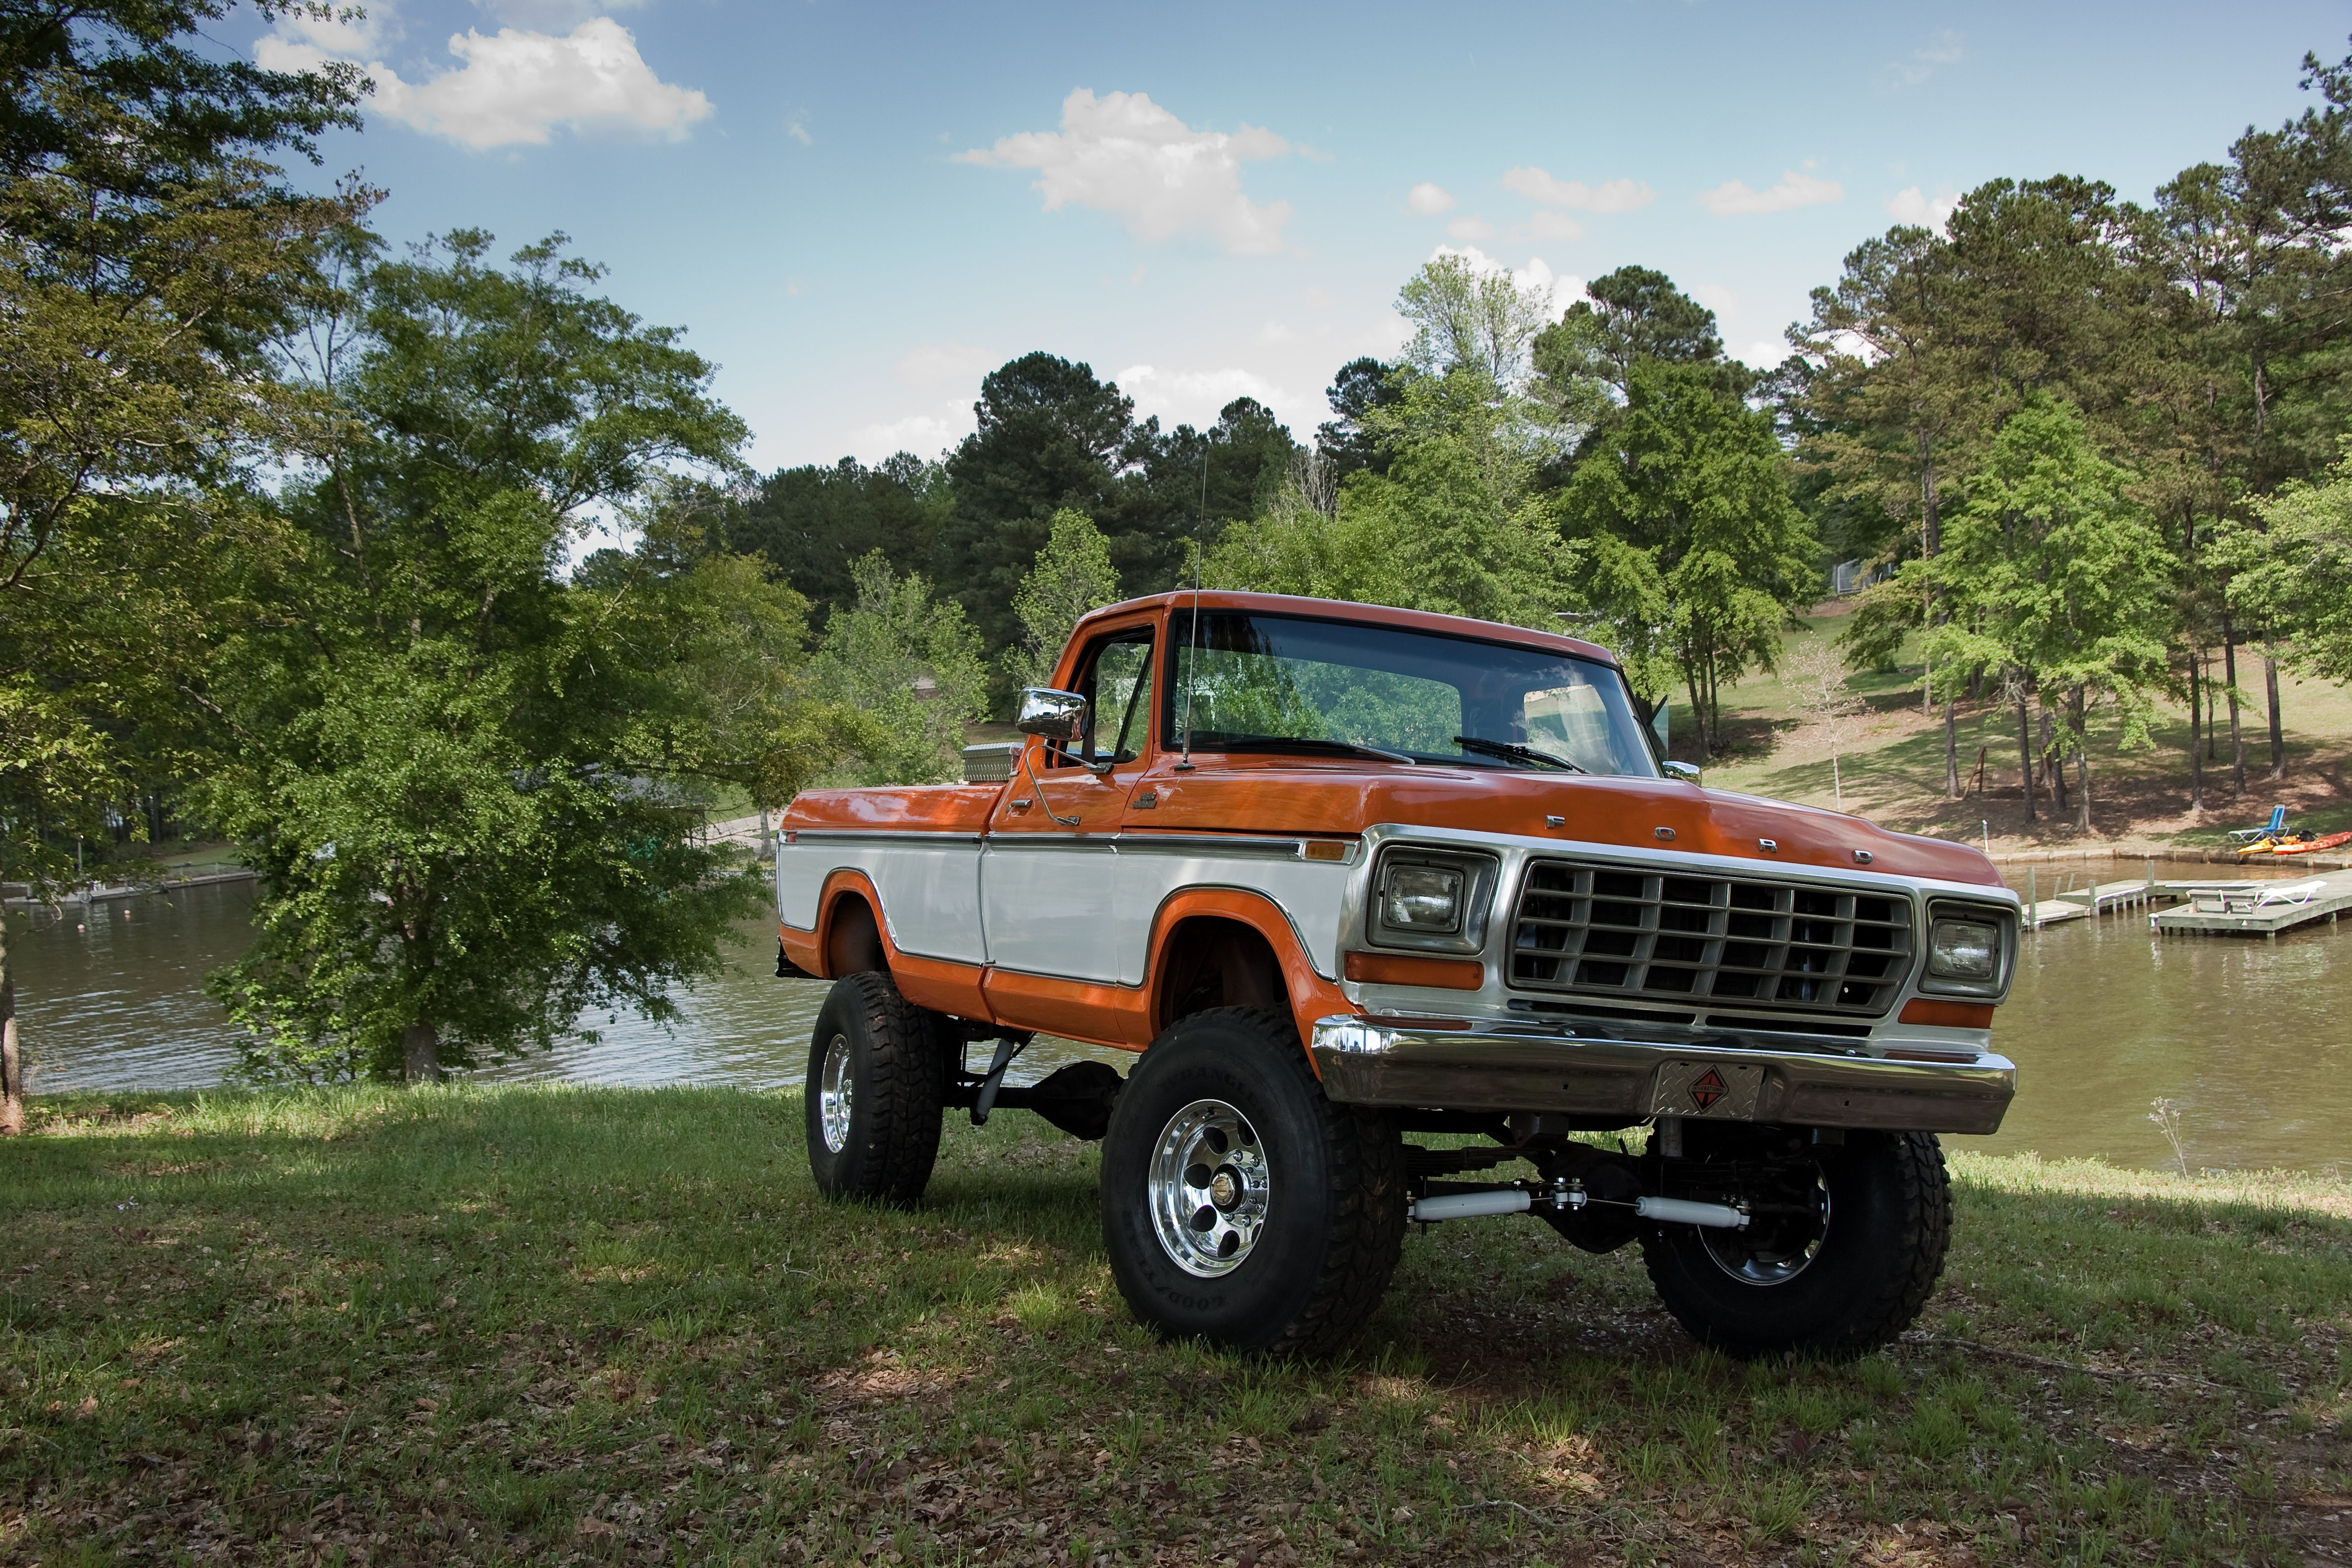 vintage jacked lifted orange white two tone lifted truck [ 4752 x 3168 Pixel ]